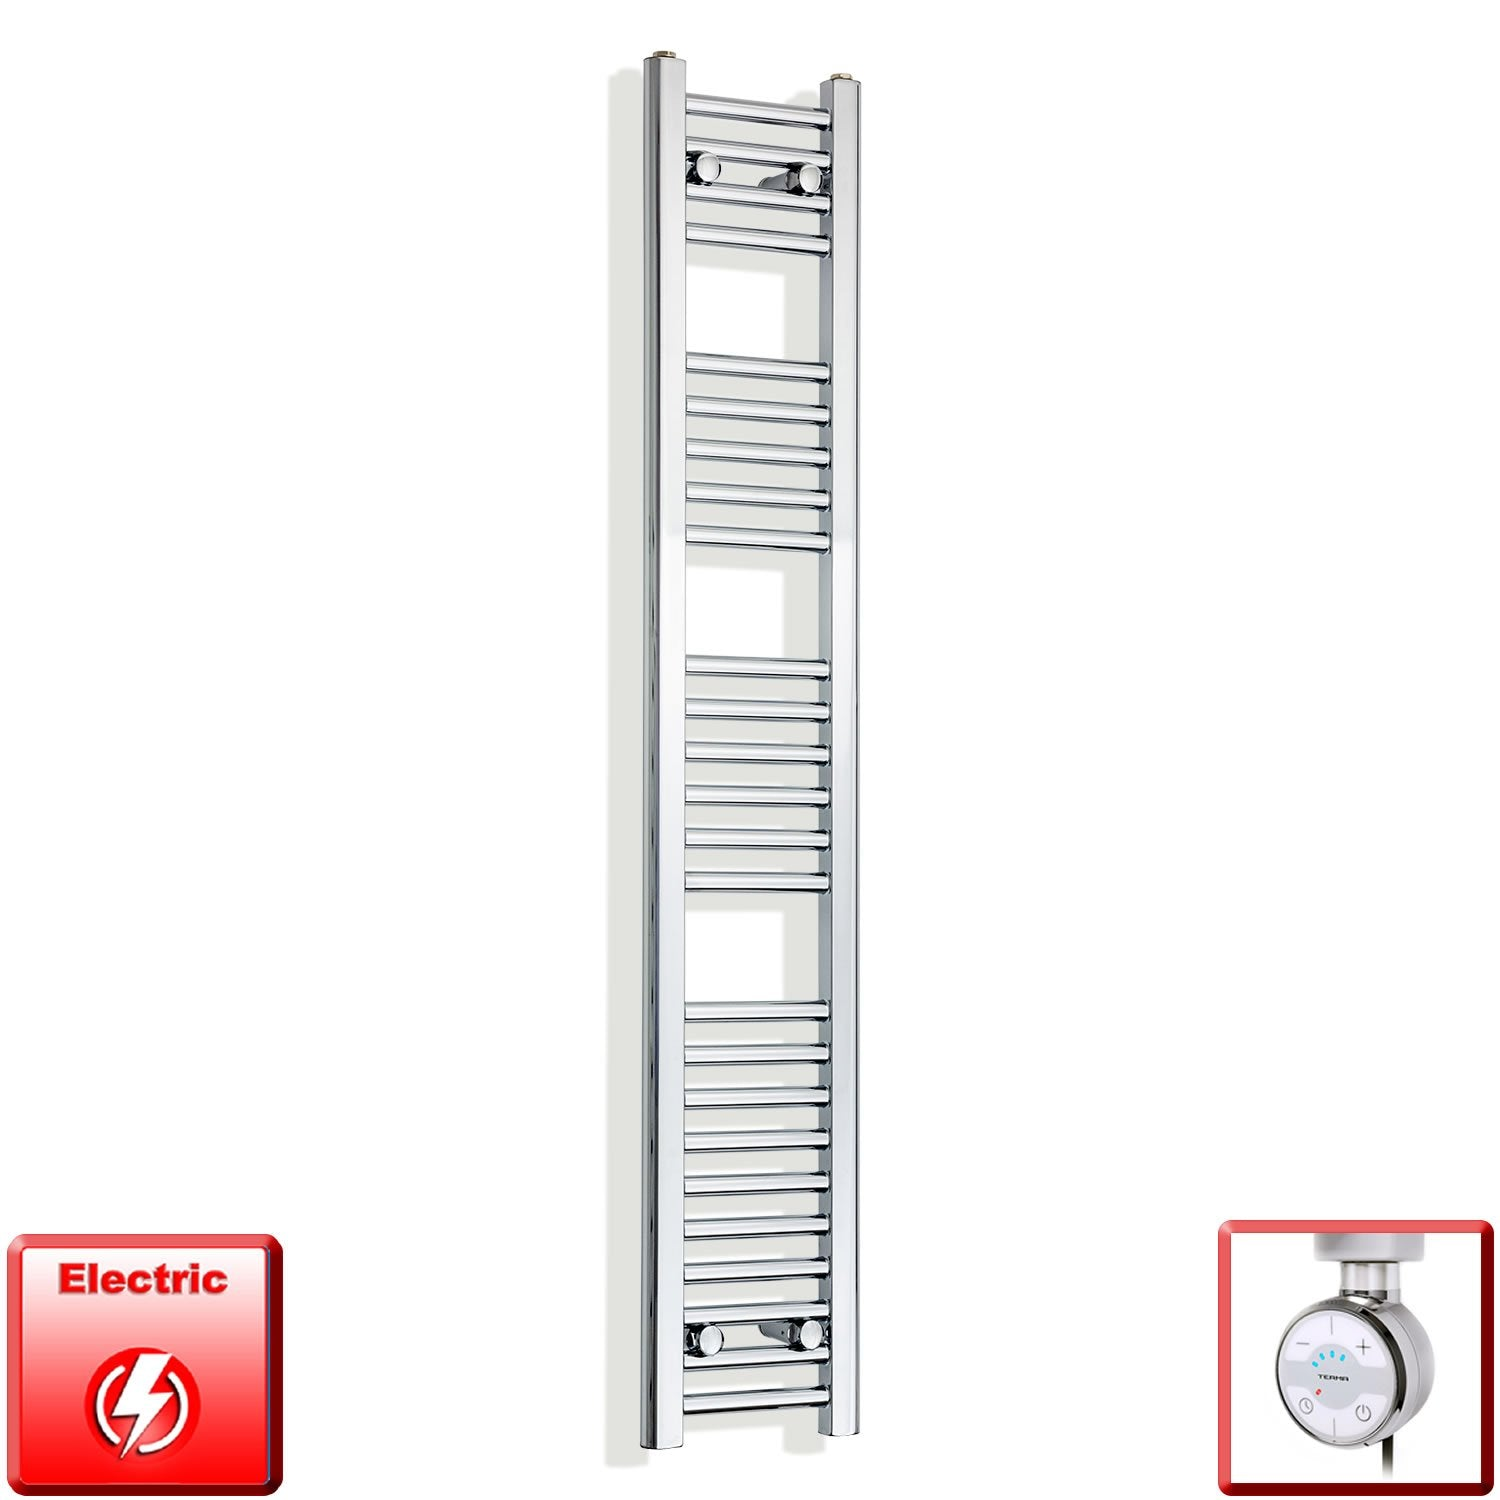 250mm Wide 1400mm High Flat Chrome Pre-Filled Electric Heated Towel Rail Radiator HTR,MOA Thermostatic Element